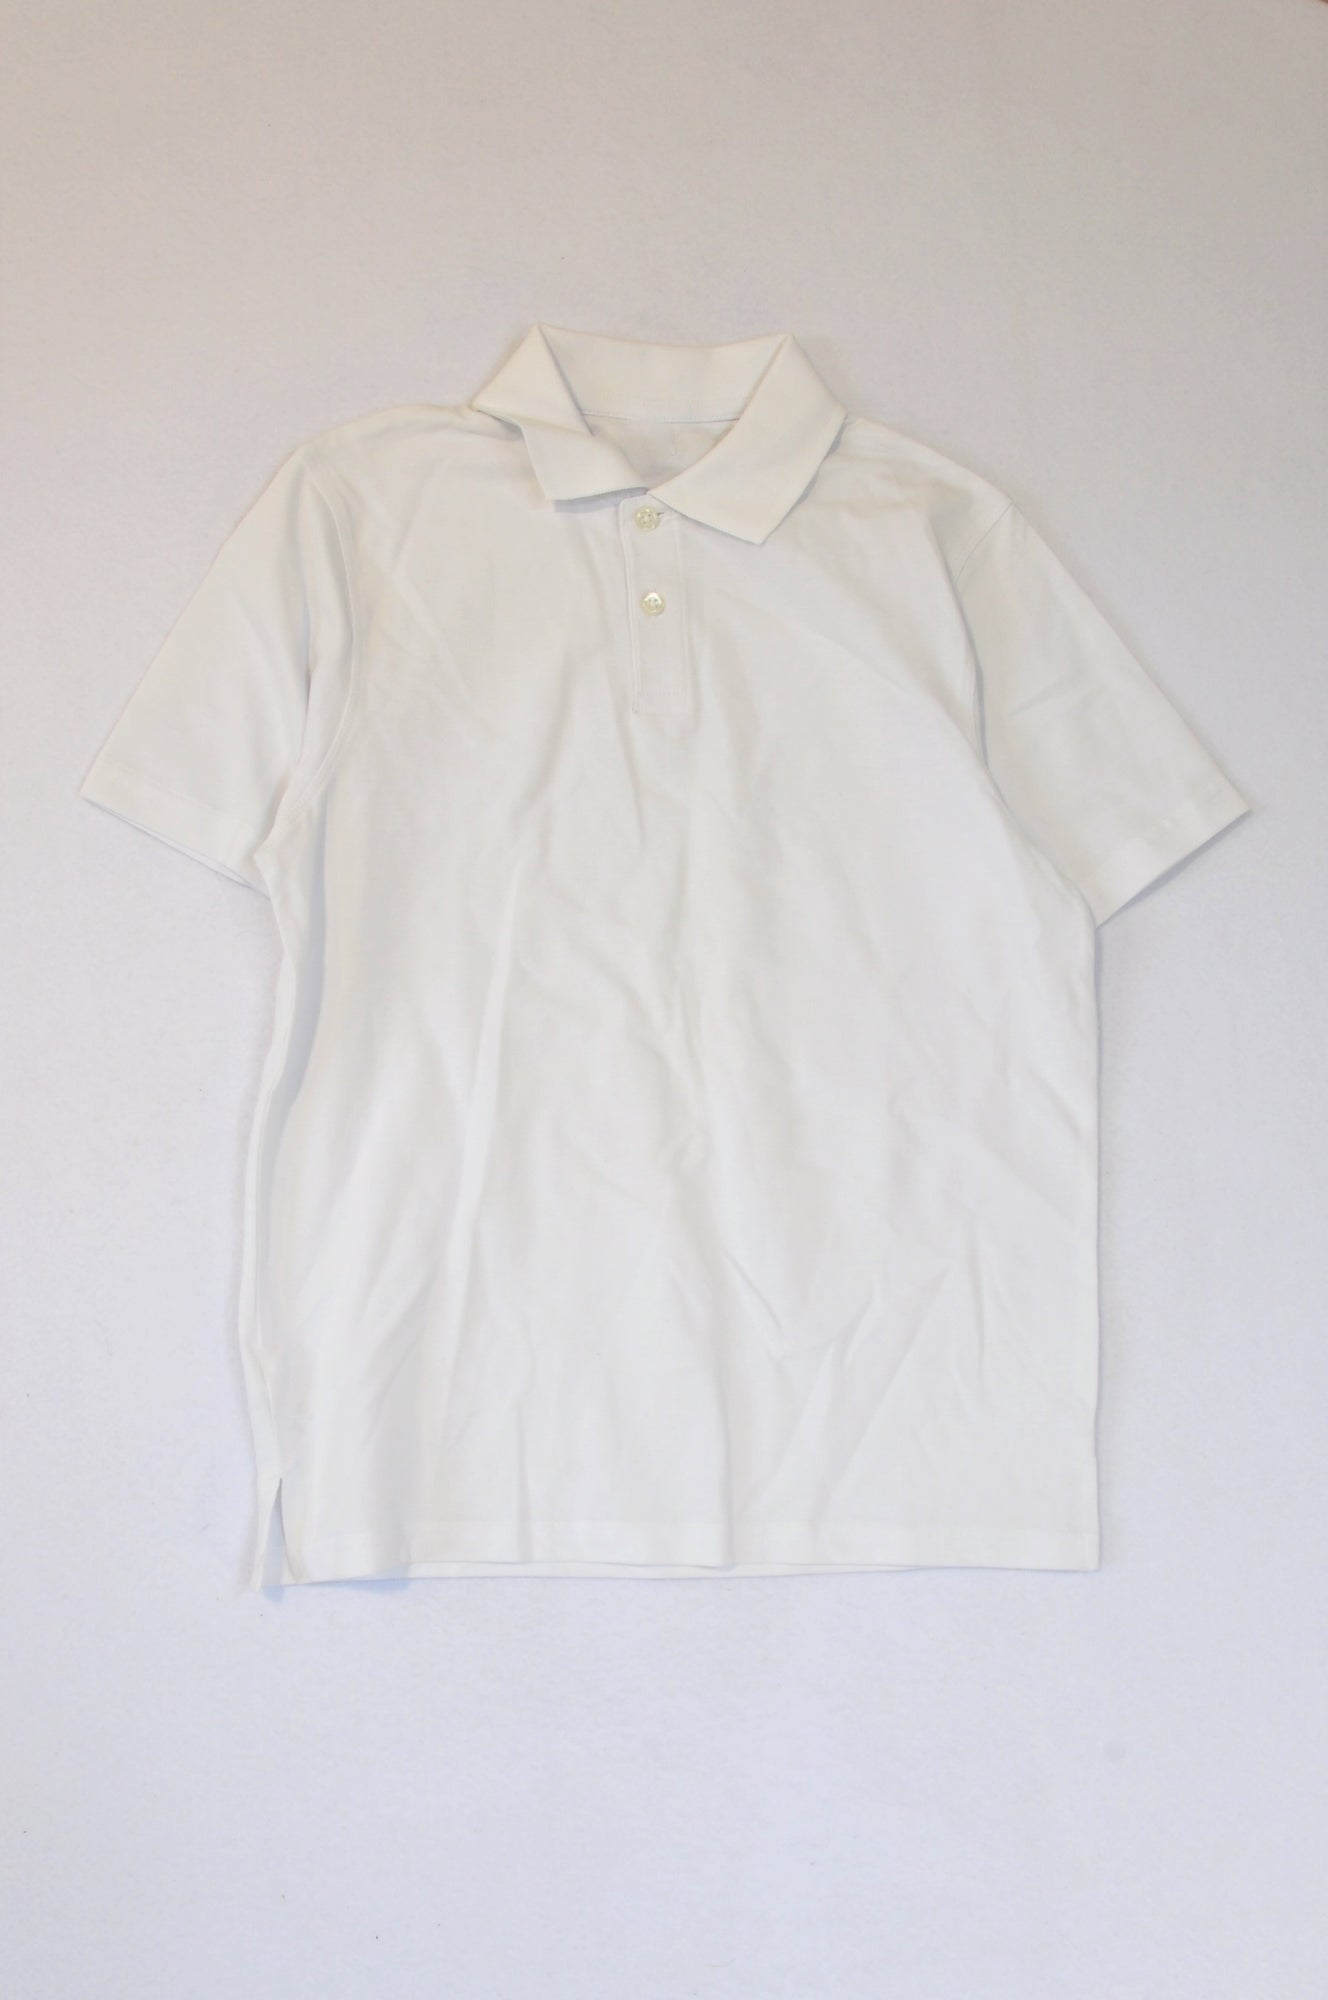 Woolworths White Textured Golf T-shirt Unisex 10-11 years